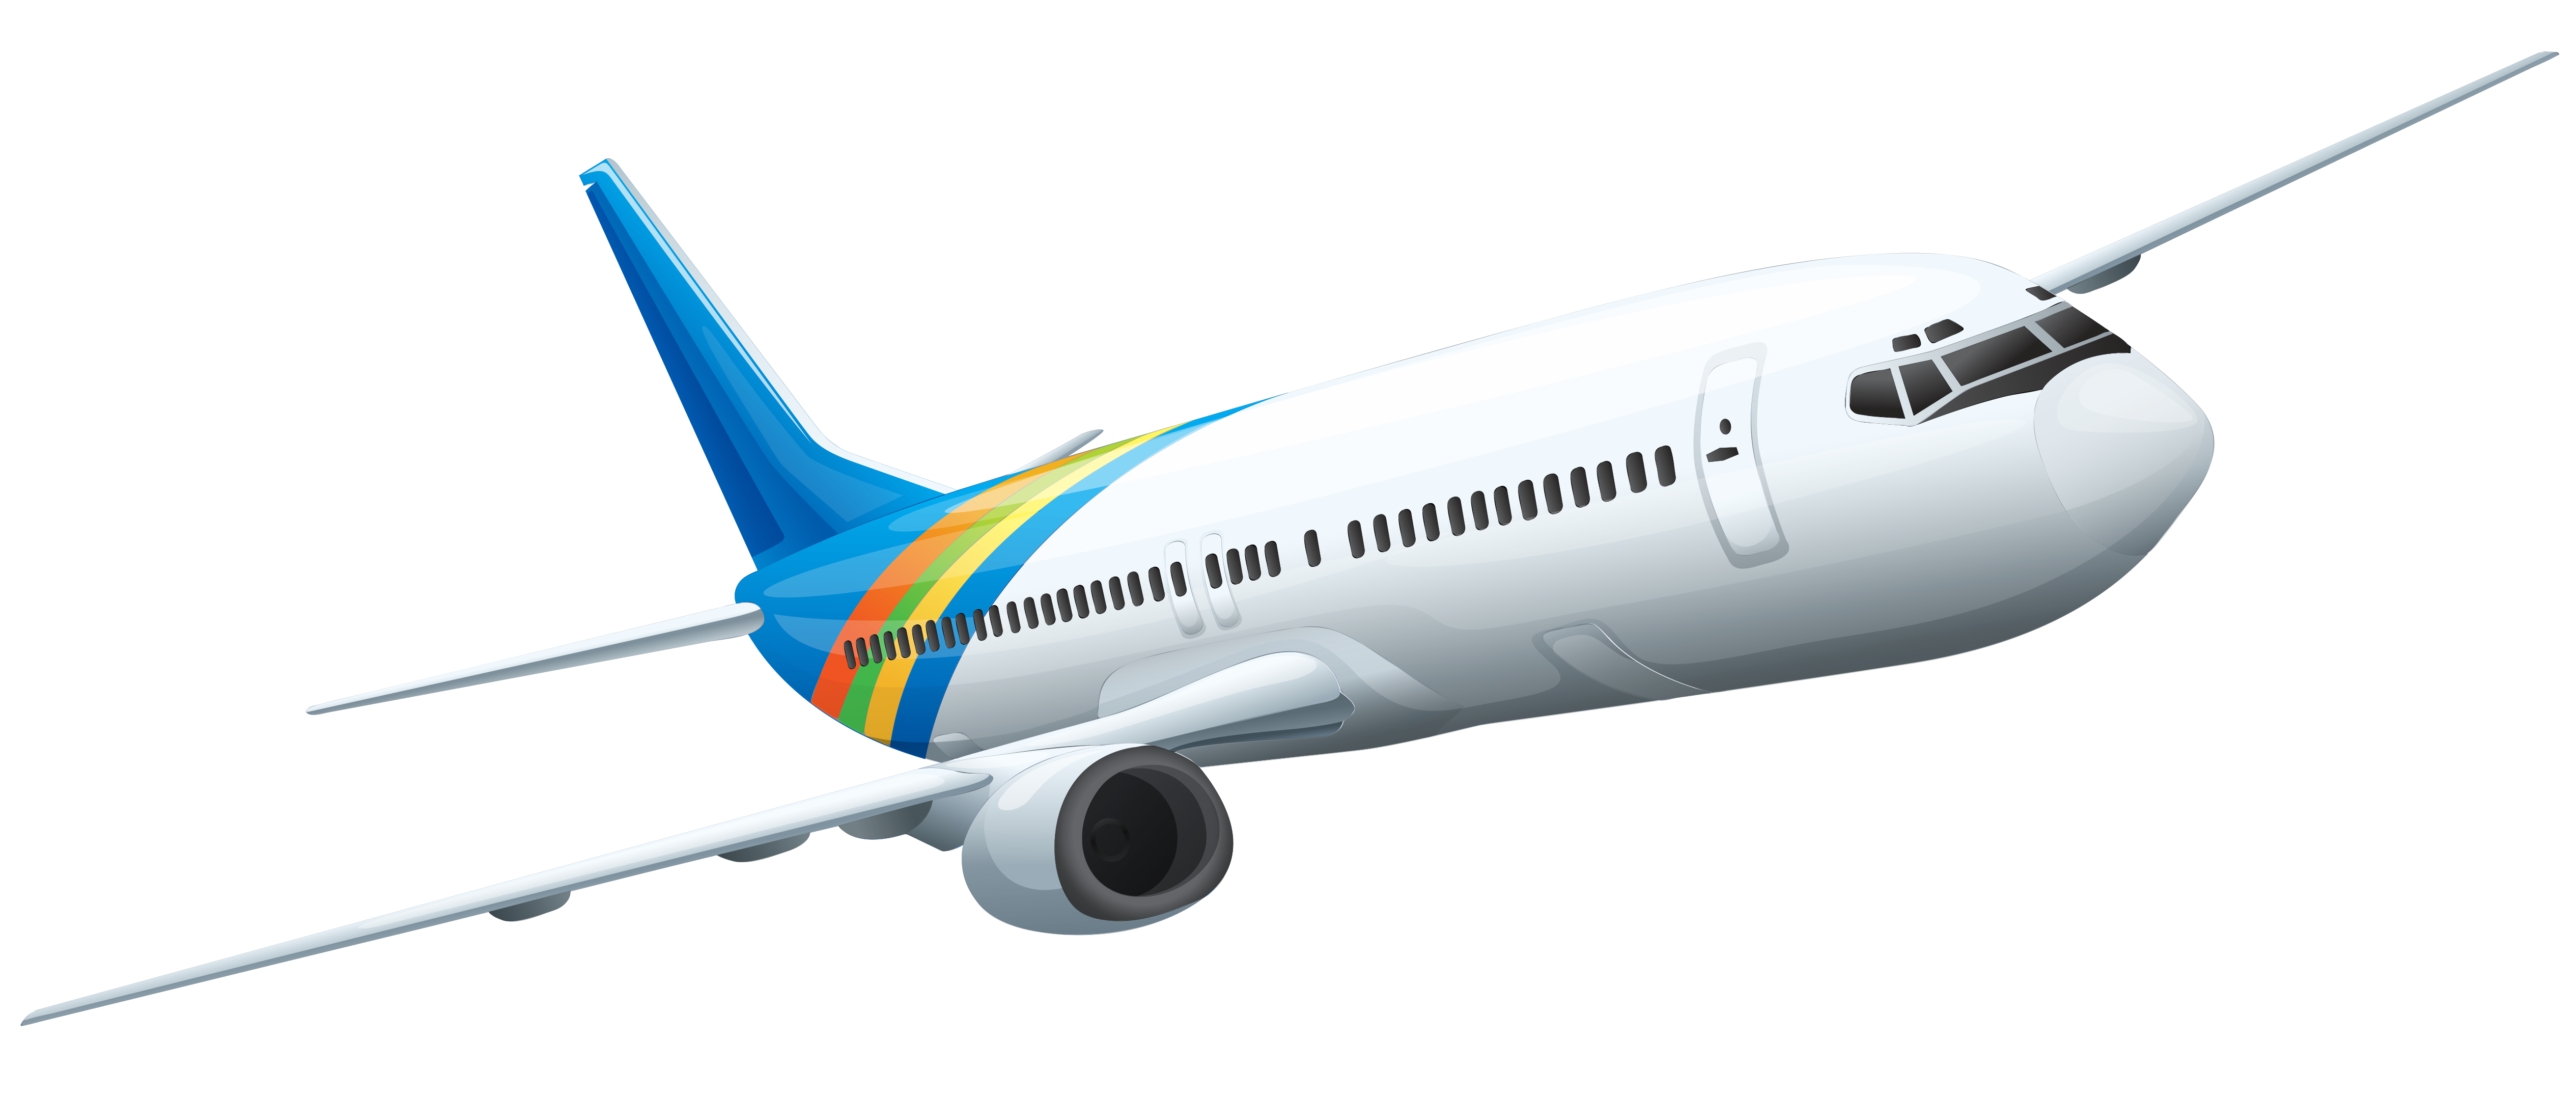 Airplane png. Clipart gallery yopriceville high